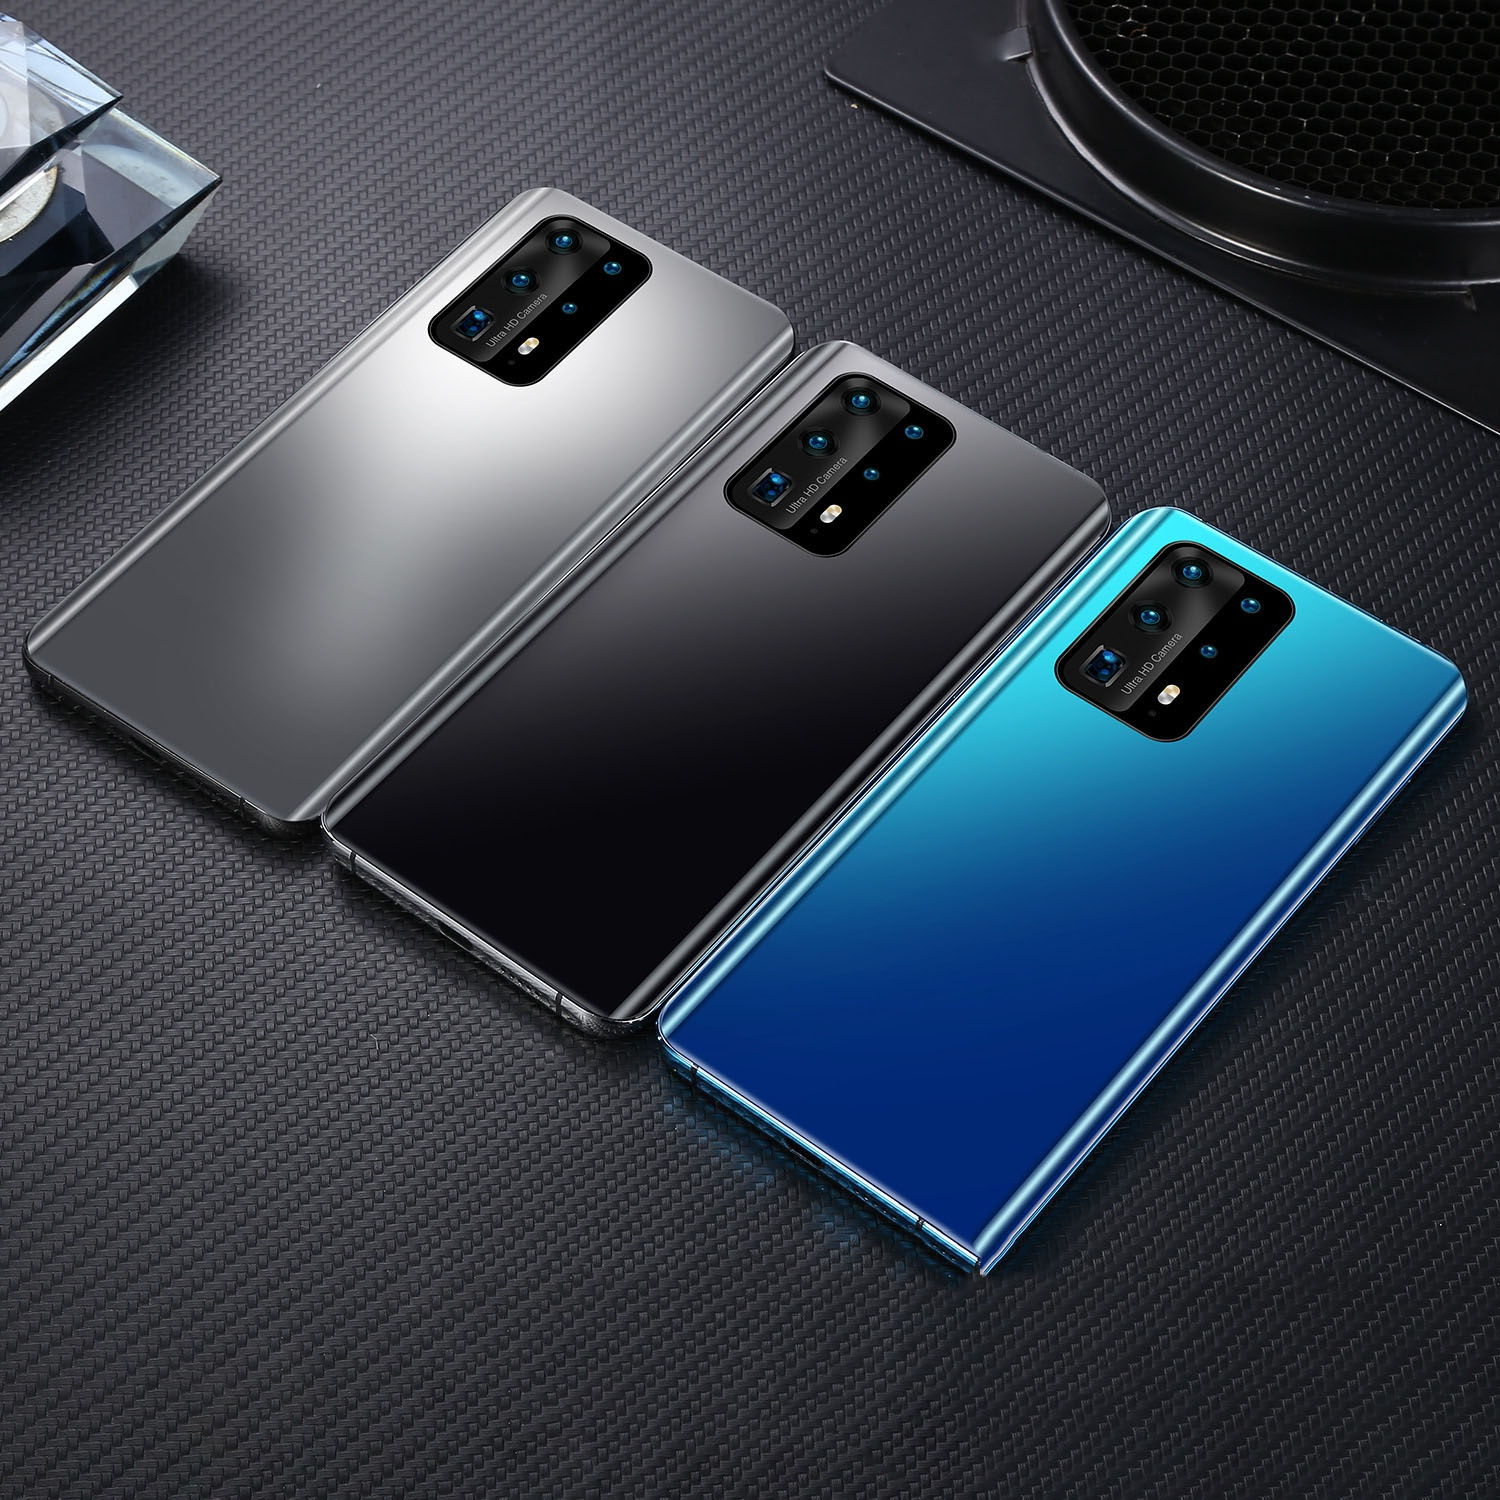 P40 Pro+ Android phone Smartphones 6.5 inch Upgraded Version Water Drop Full Screen 4G 8 Core 12GB+512GB 2 Sim cards support TF card unlocked cellphone with Face ID and fingerprint 4800mAH Large Battery GPS WIFI AT&T AND T-MOBILE